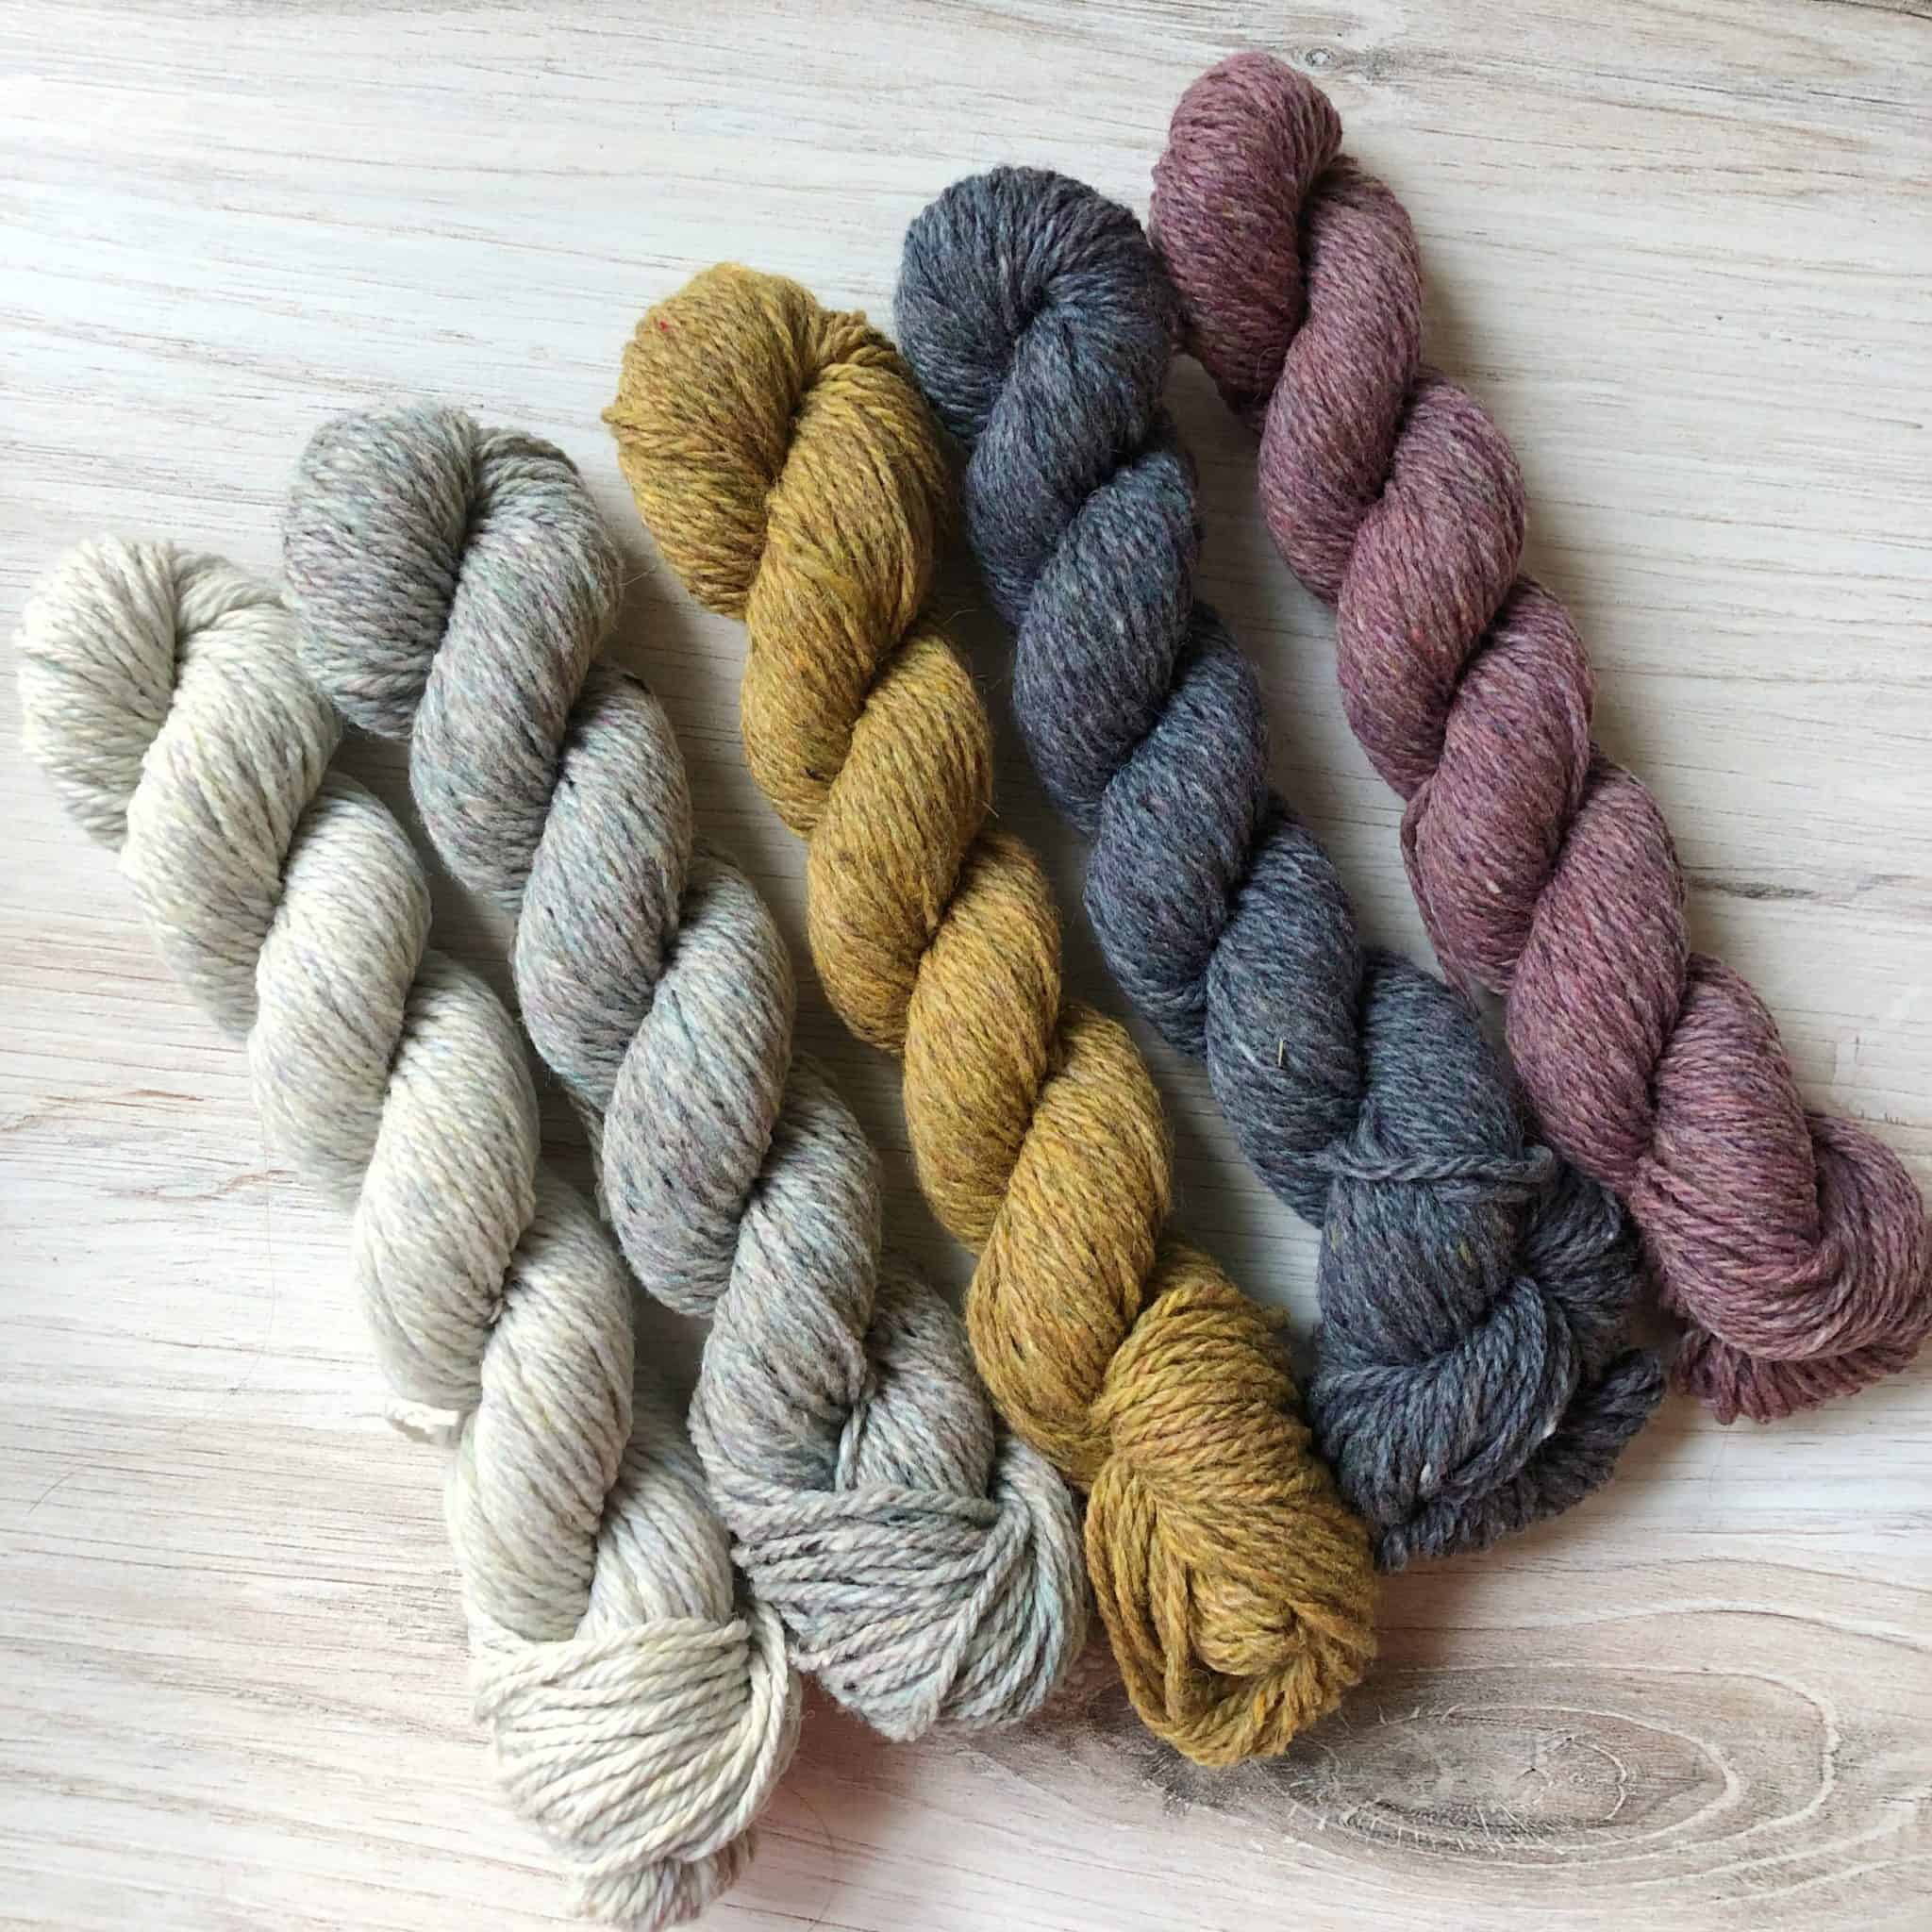 A set of white, gray, gold and pink skeins of yarn.